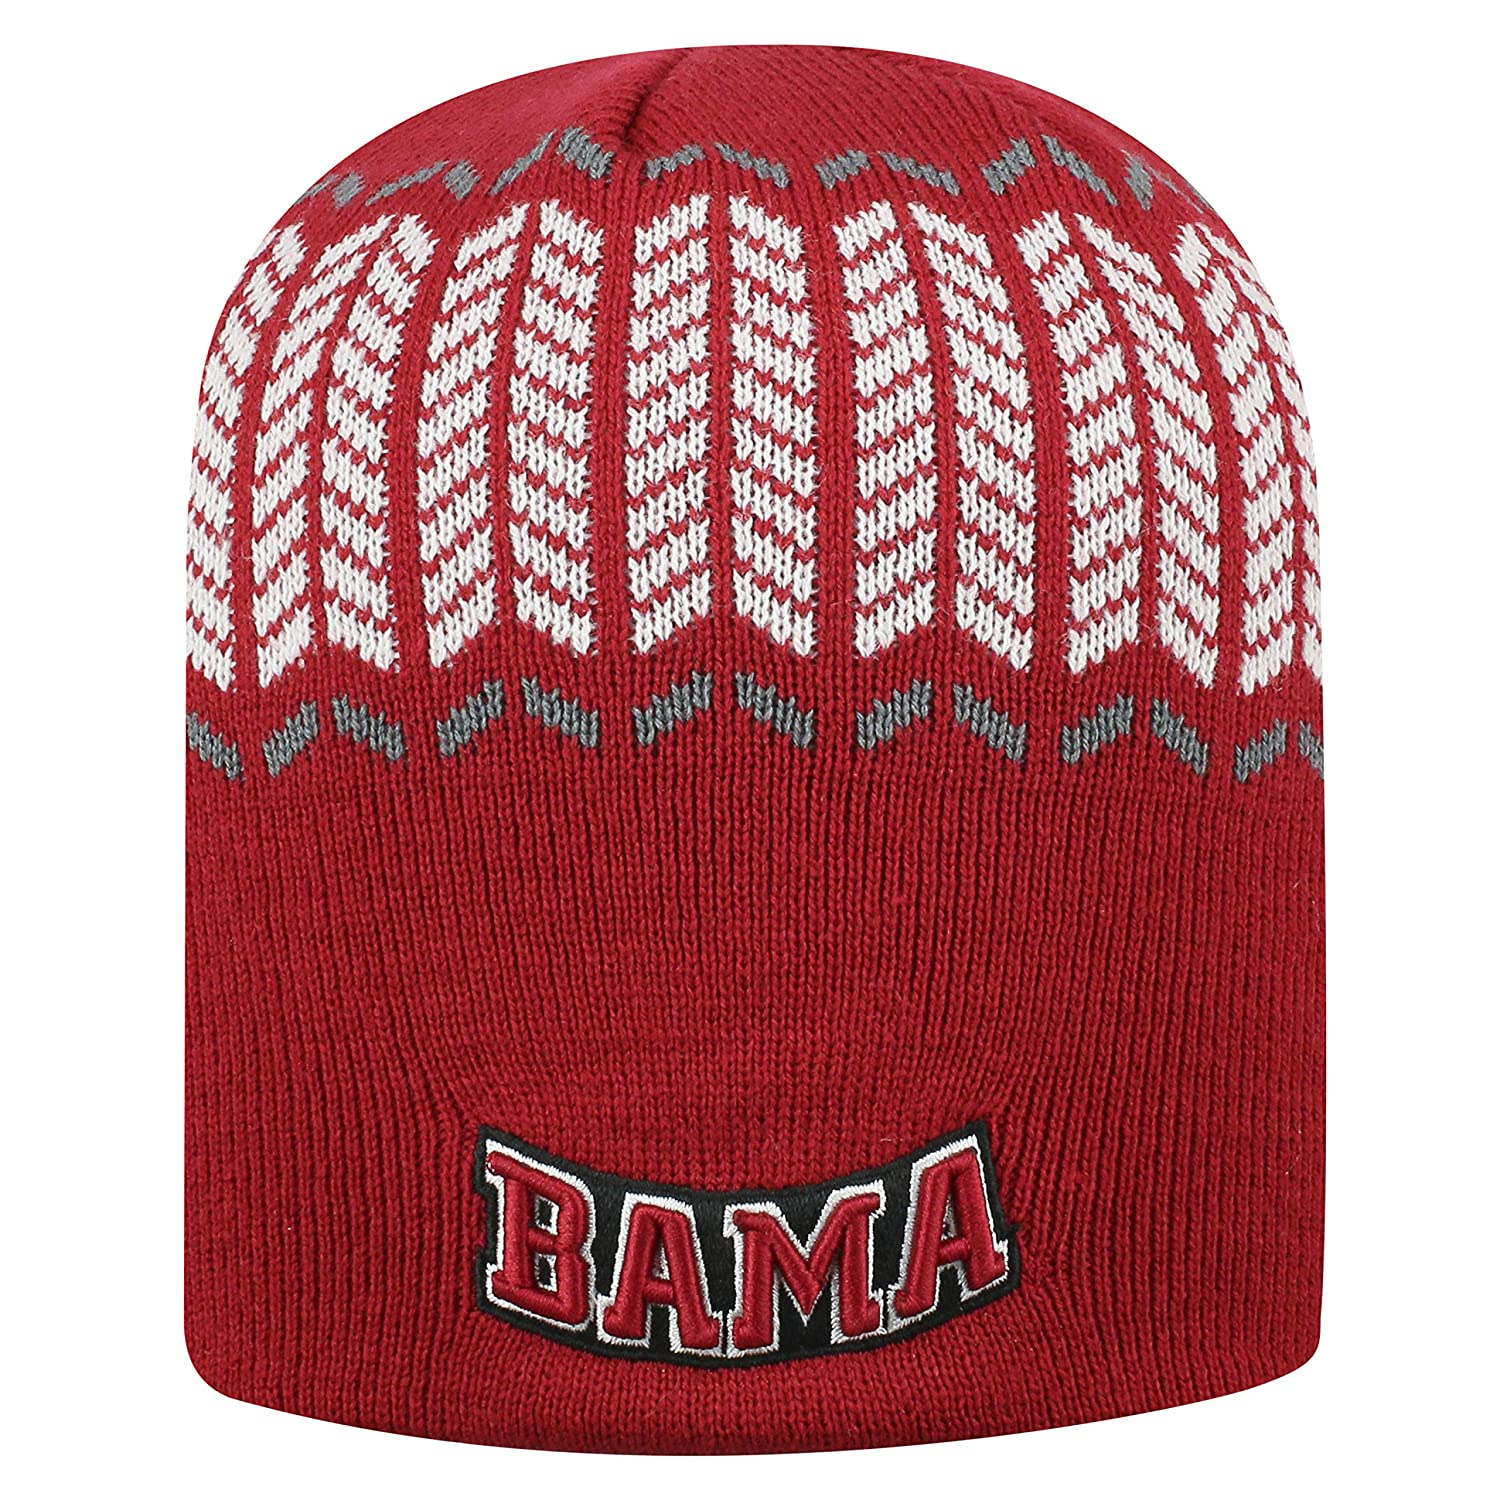 Top of the World Alabama Crimson Tide Official NCAA Uncuffed Knit Sports Stripe Beanie Hat 744643